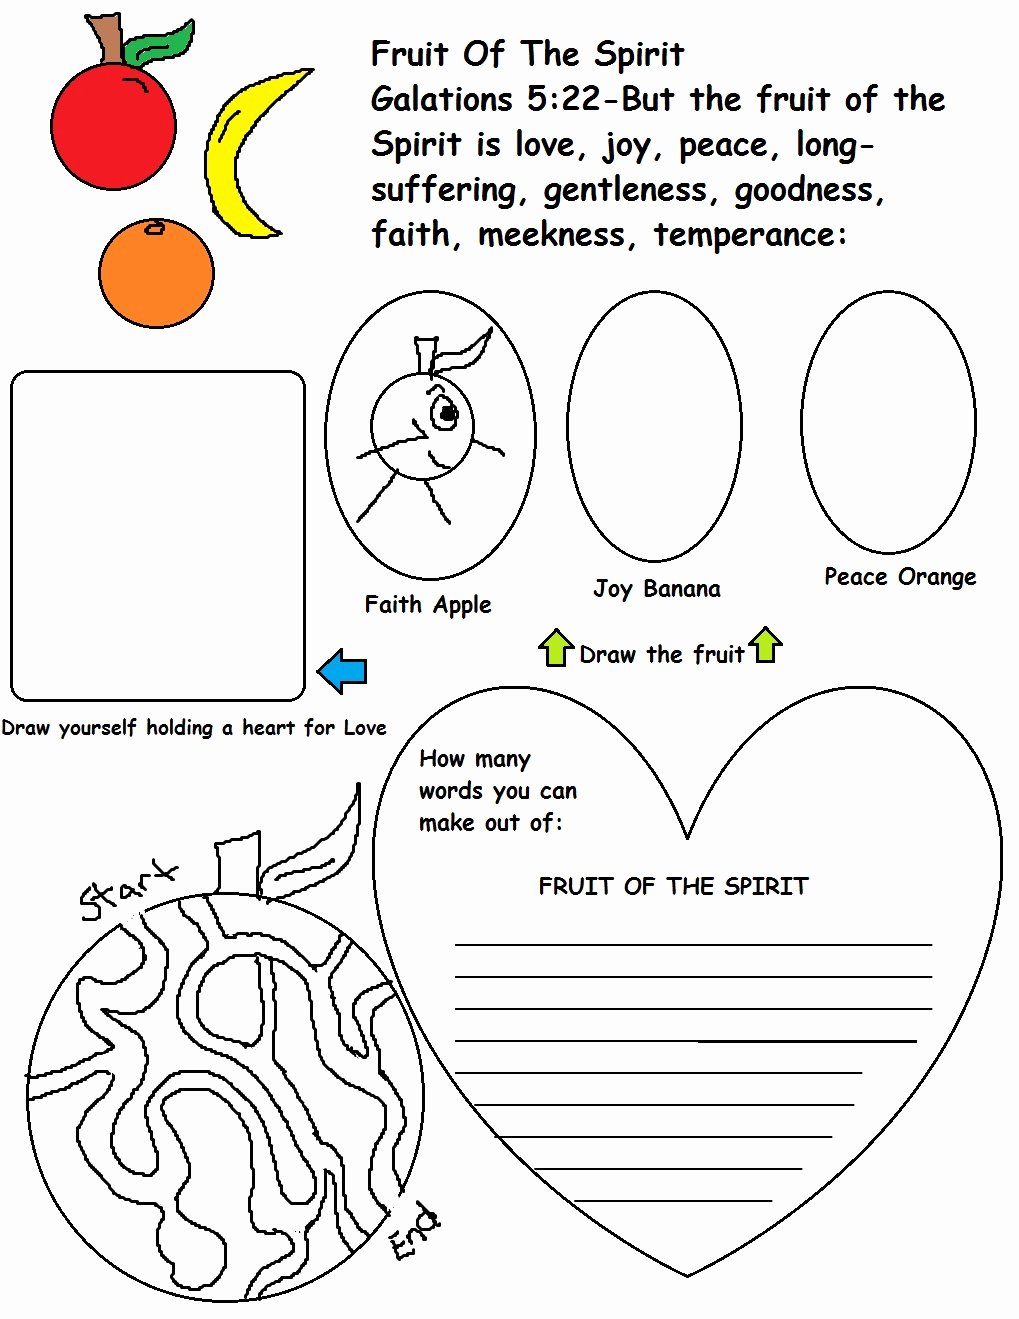 Fruits Of the Spirit Worksheet Kids Fruit Of the Spirit Sunday School Lesson